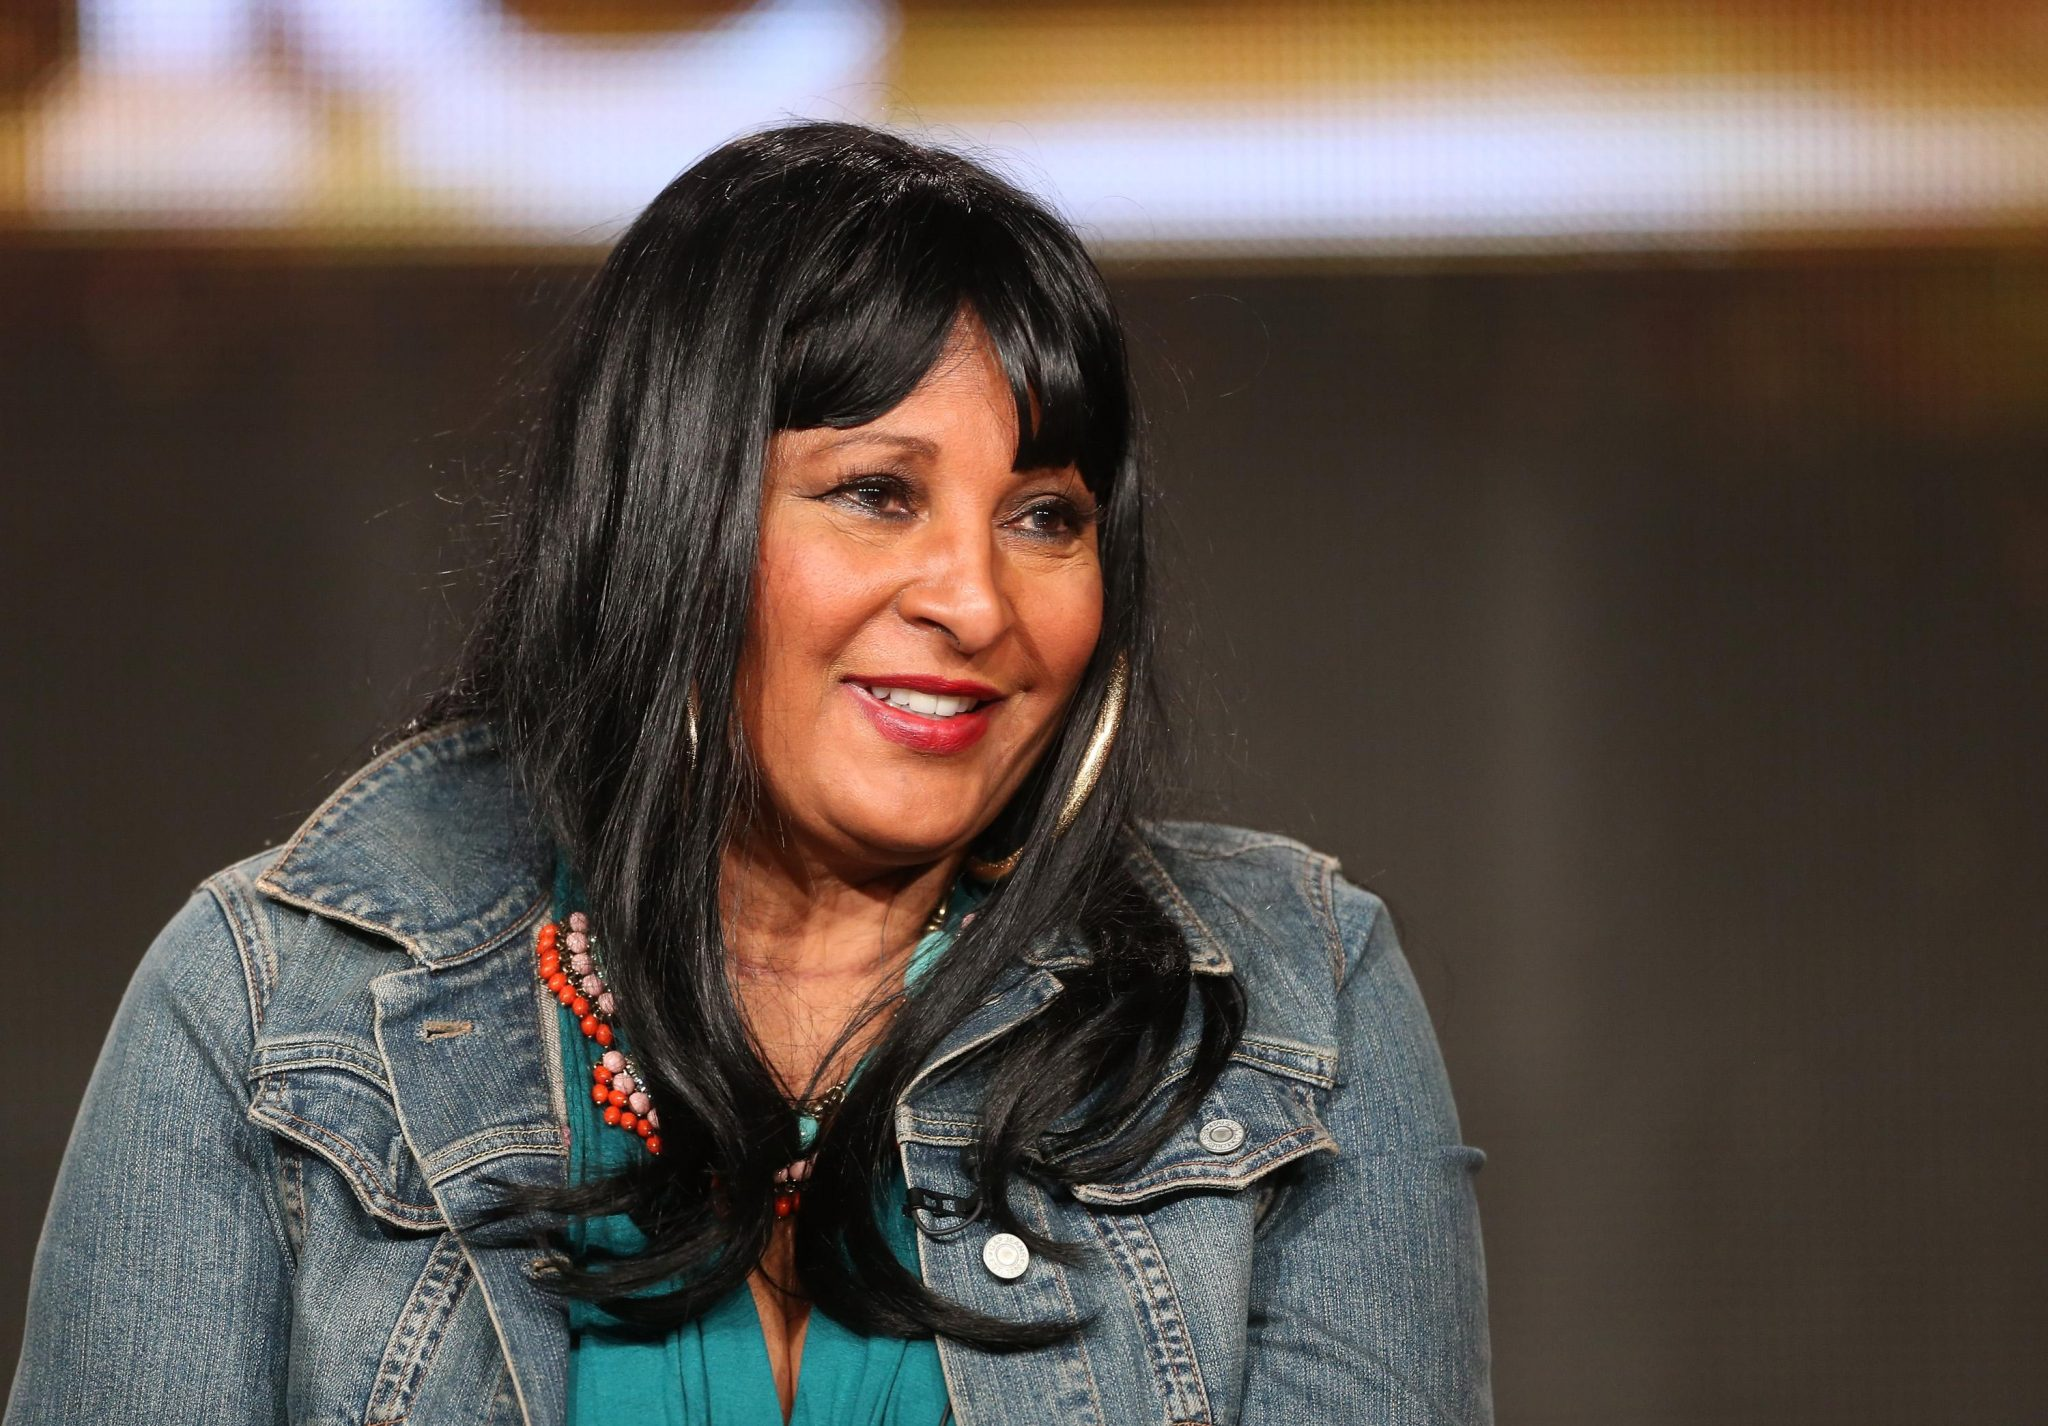 pam grier wikipam grier vk, pam grier imdb, pam grier height, pam grier 2016, pam grier instagram, pam grier wiki, pam grier jackie brown, pam grier wikipedia, pam grier, pam grier net worth, pam grier movies, pam grier 2015, pam grier 2014, pam grier coffee, pam grier young